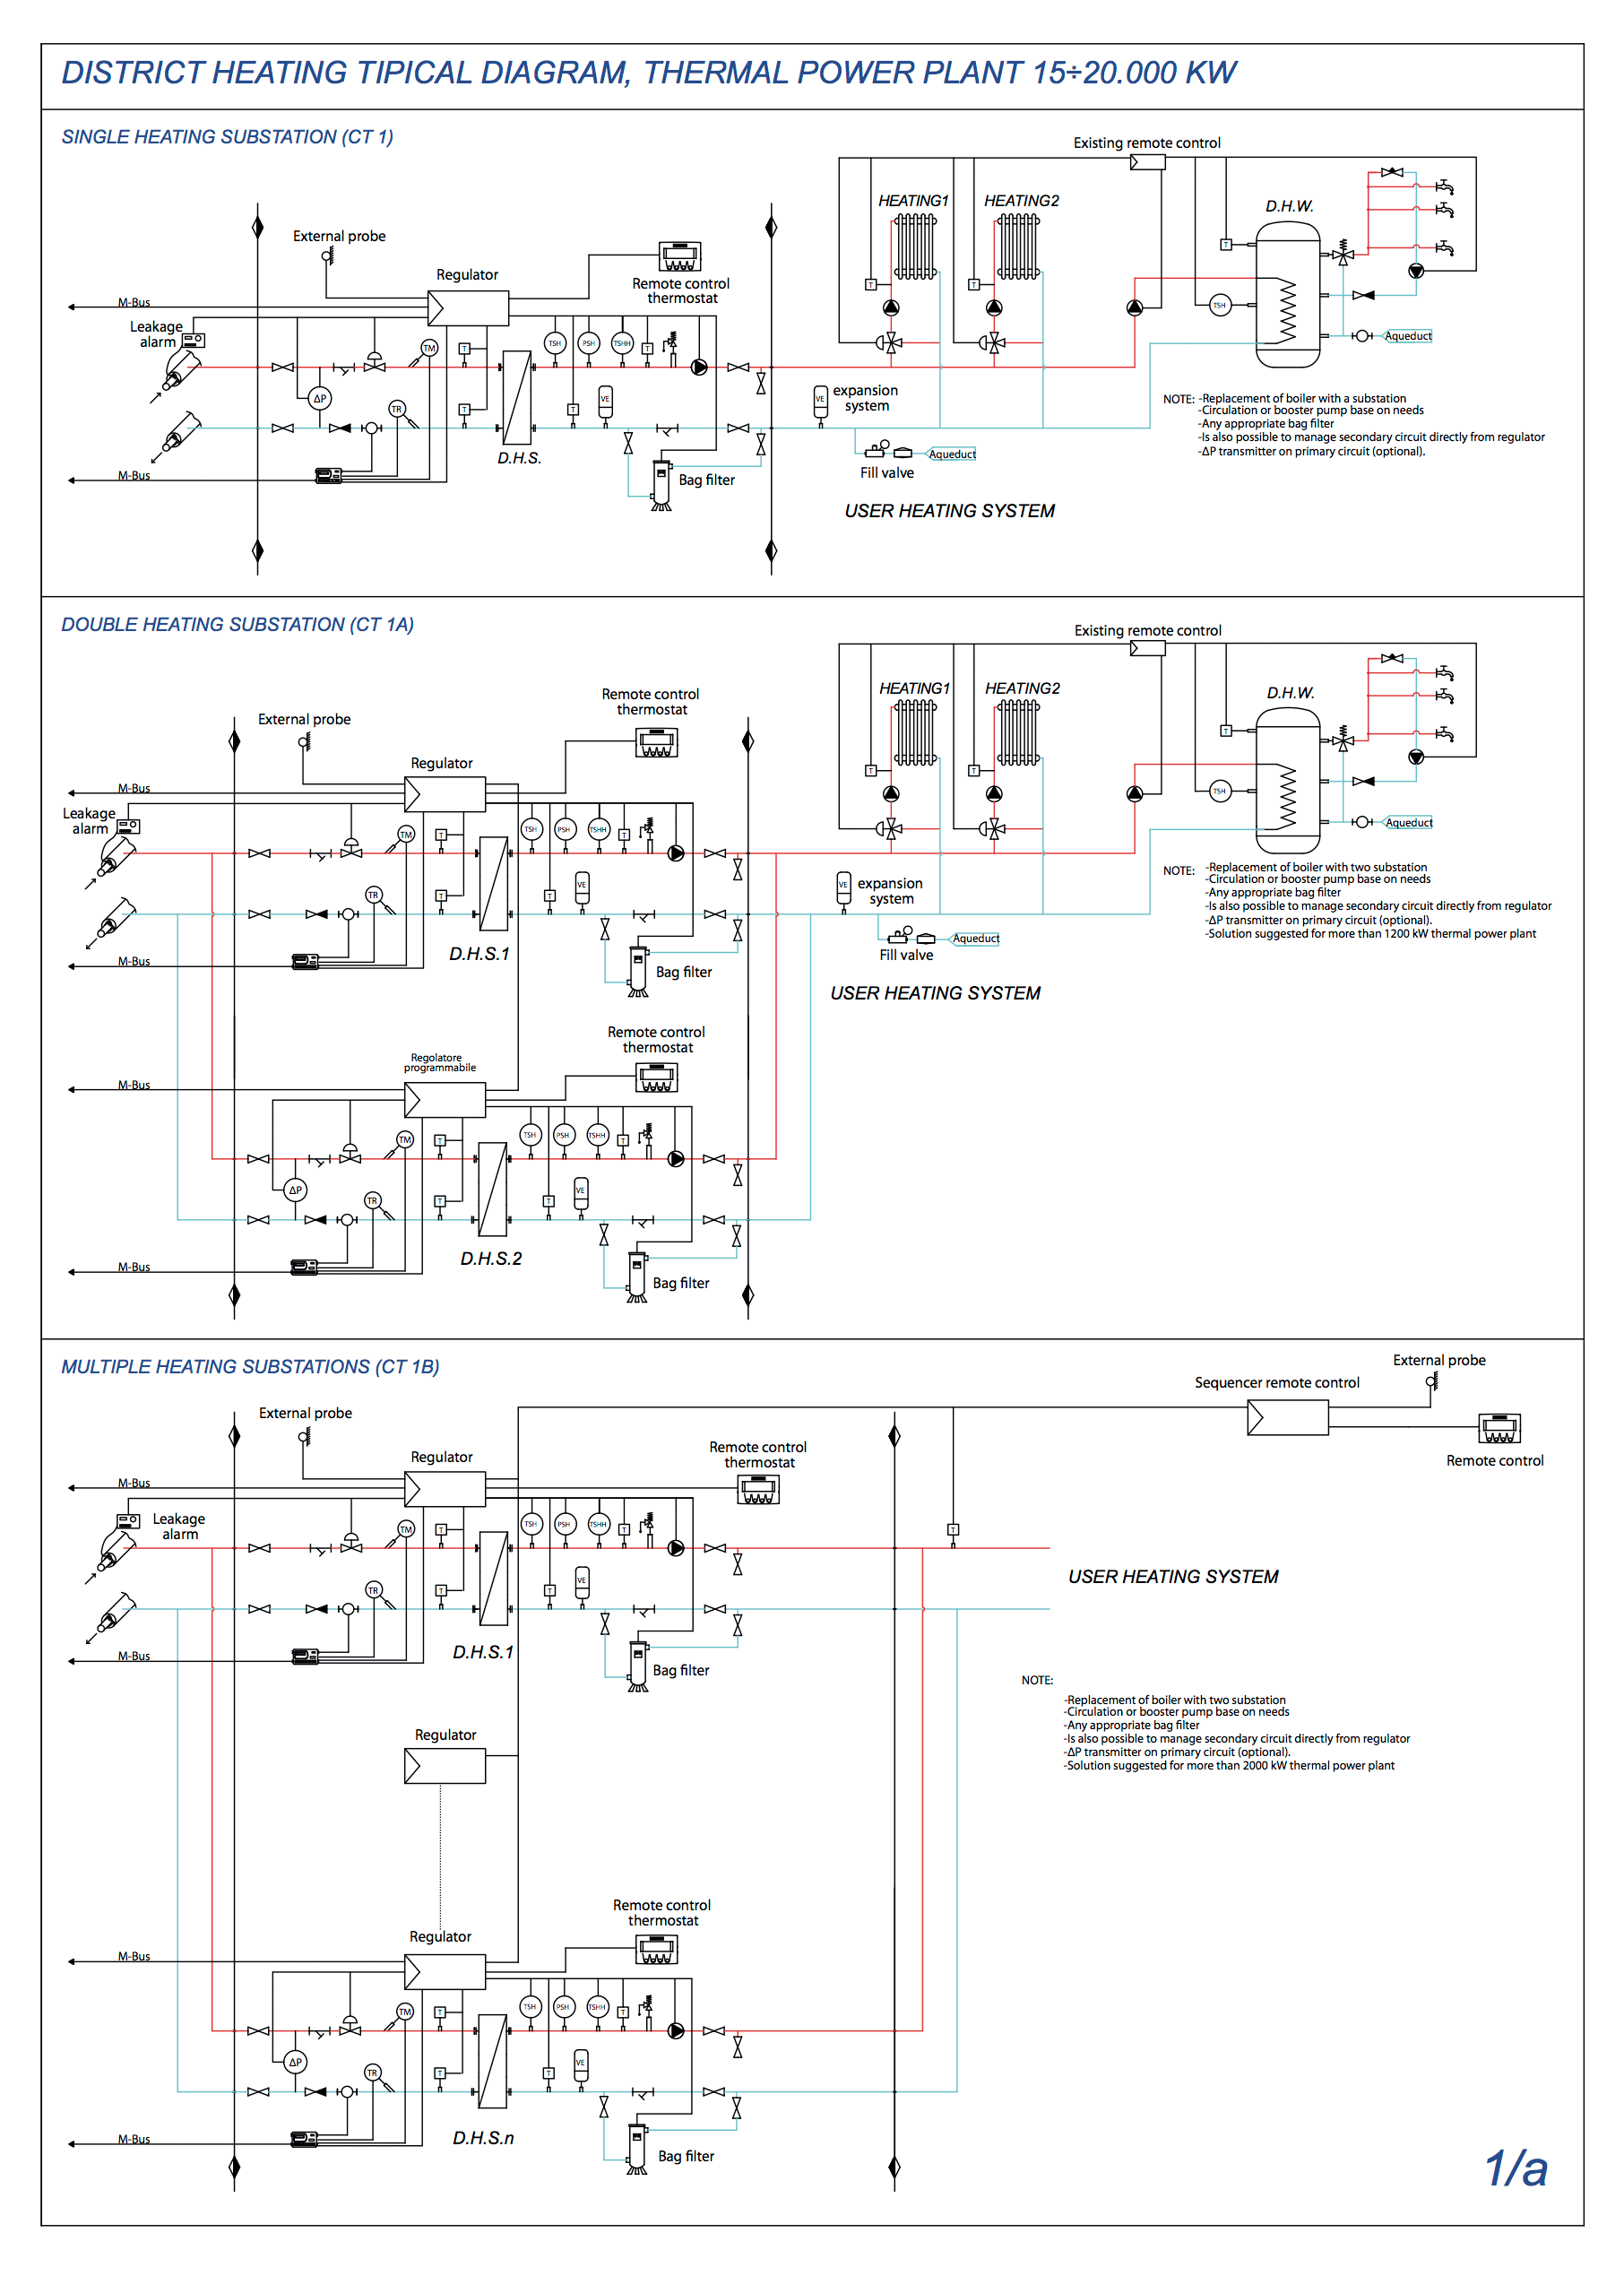 hight resolution of images of thermal power plant electrical design